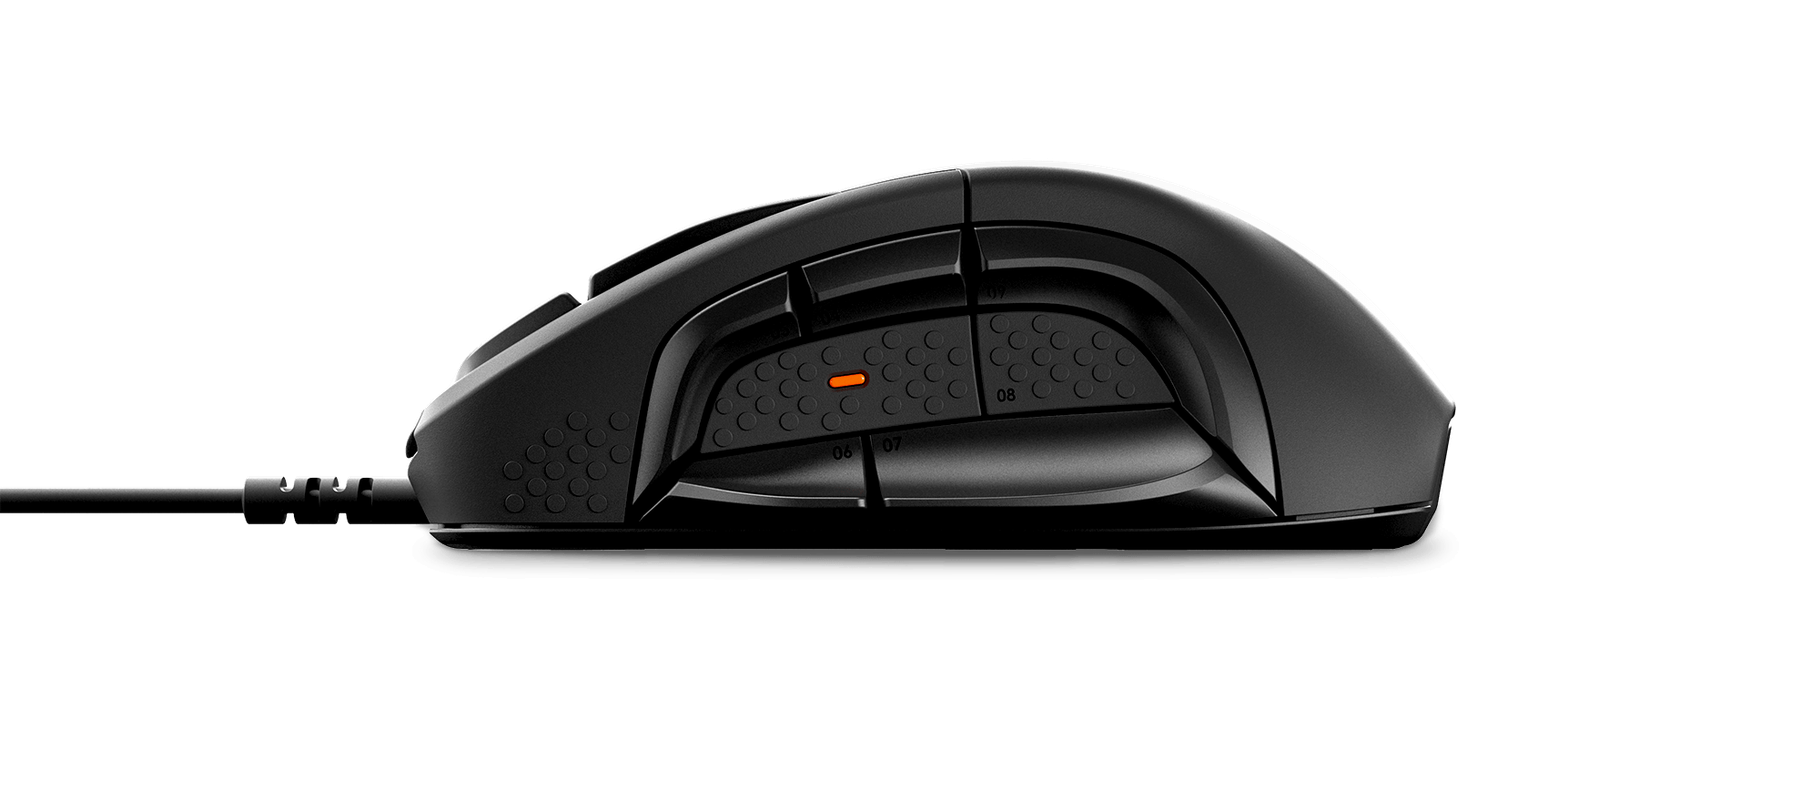 Rival 500 side view showing off the unique 12 button layout